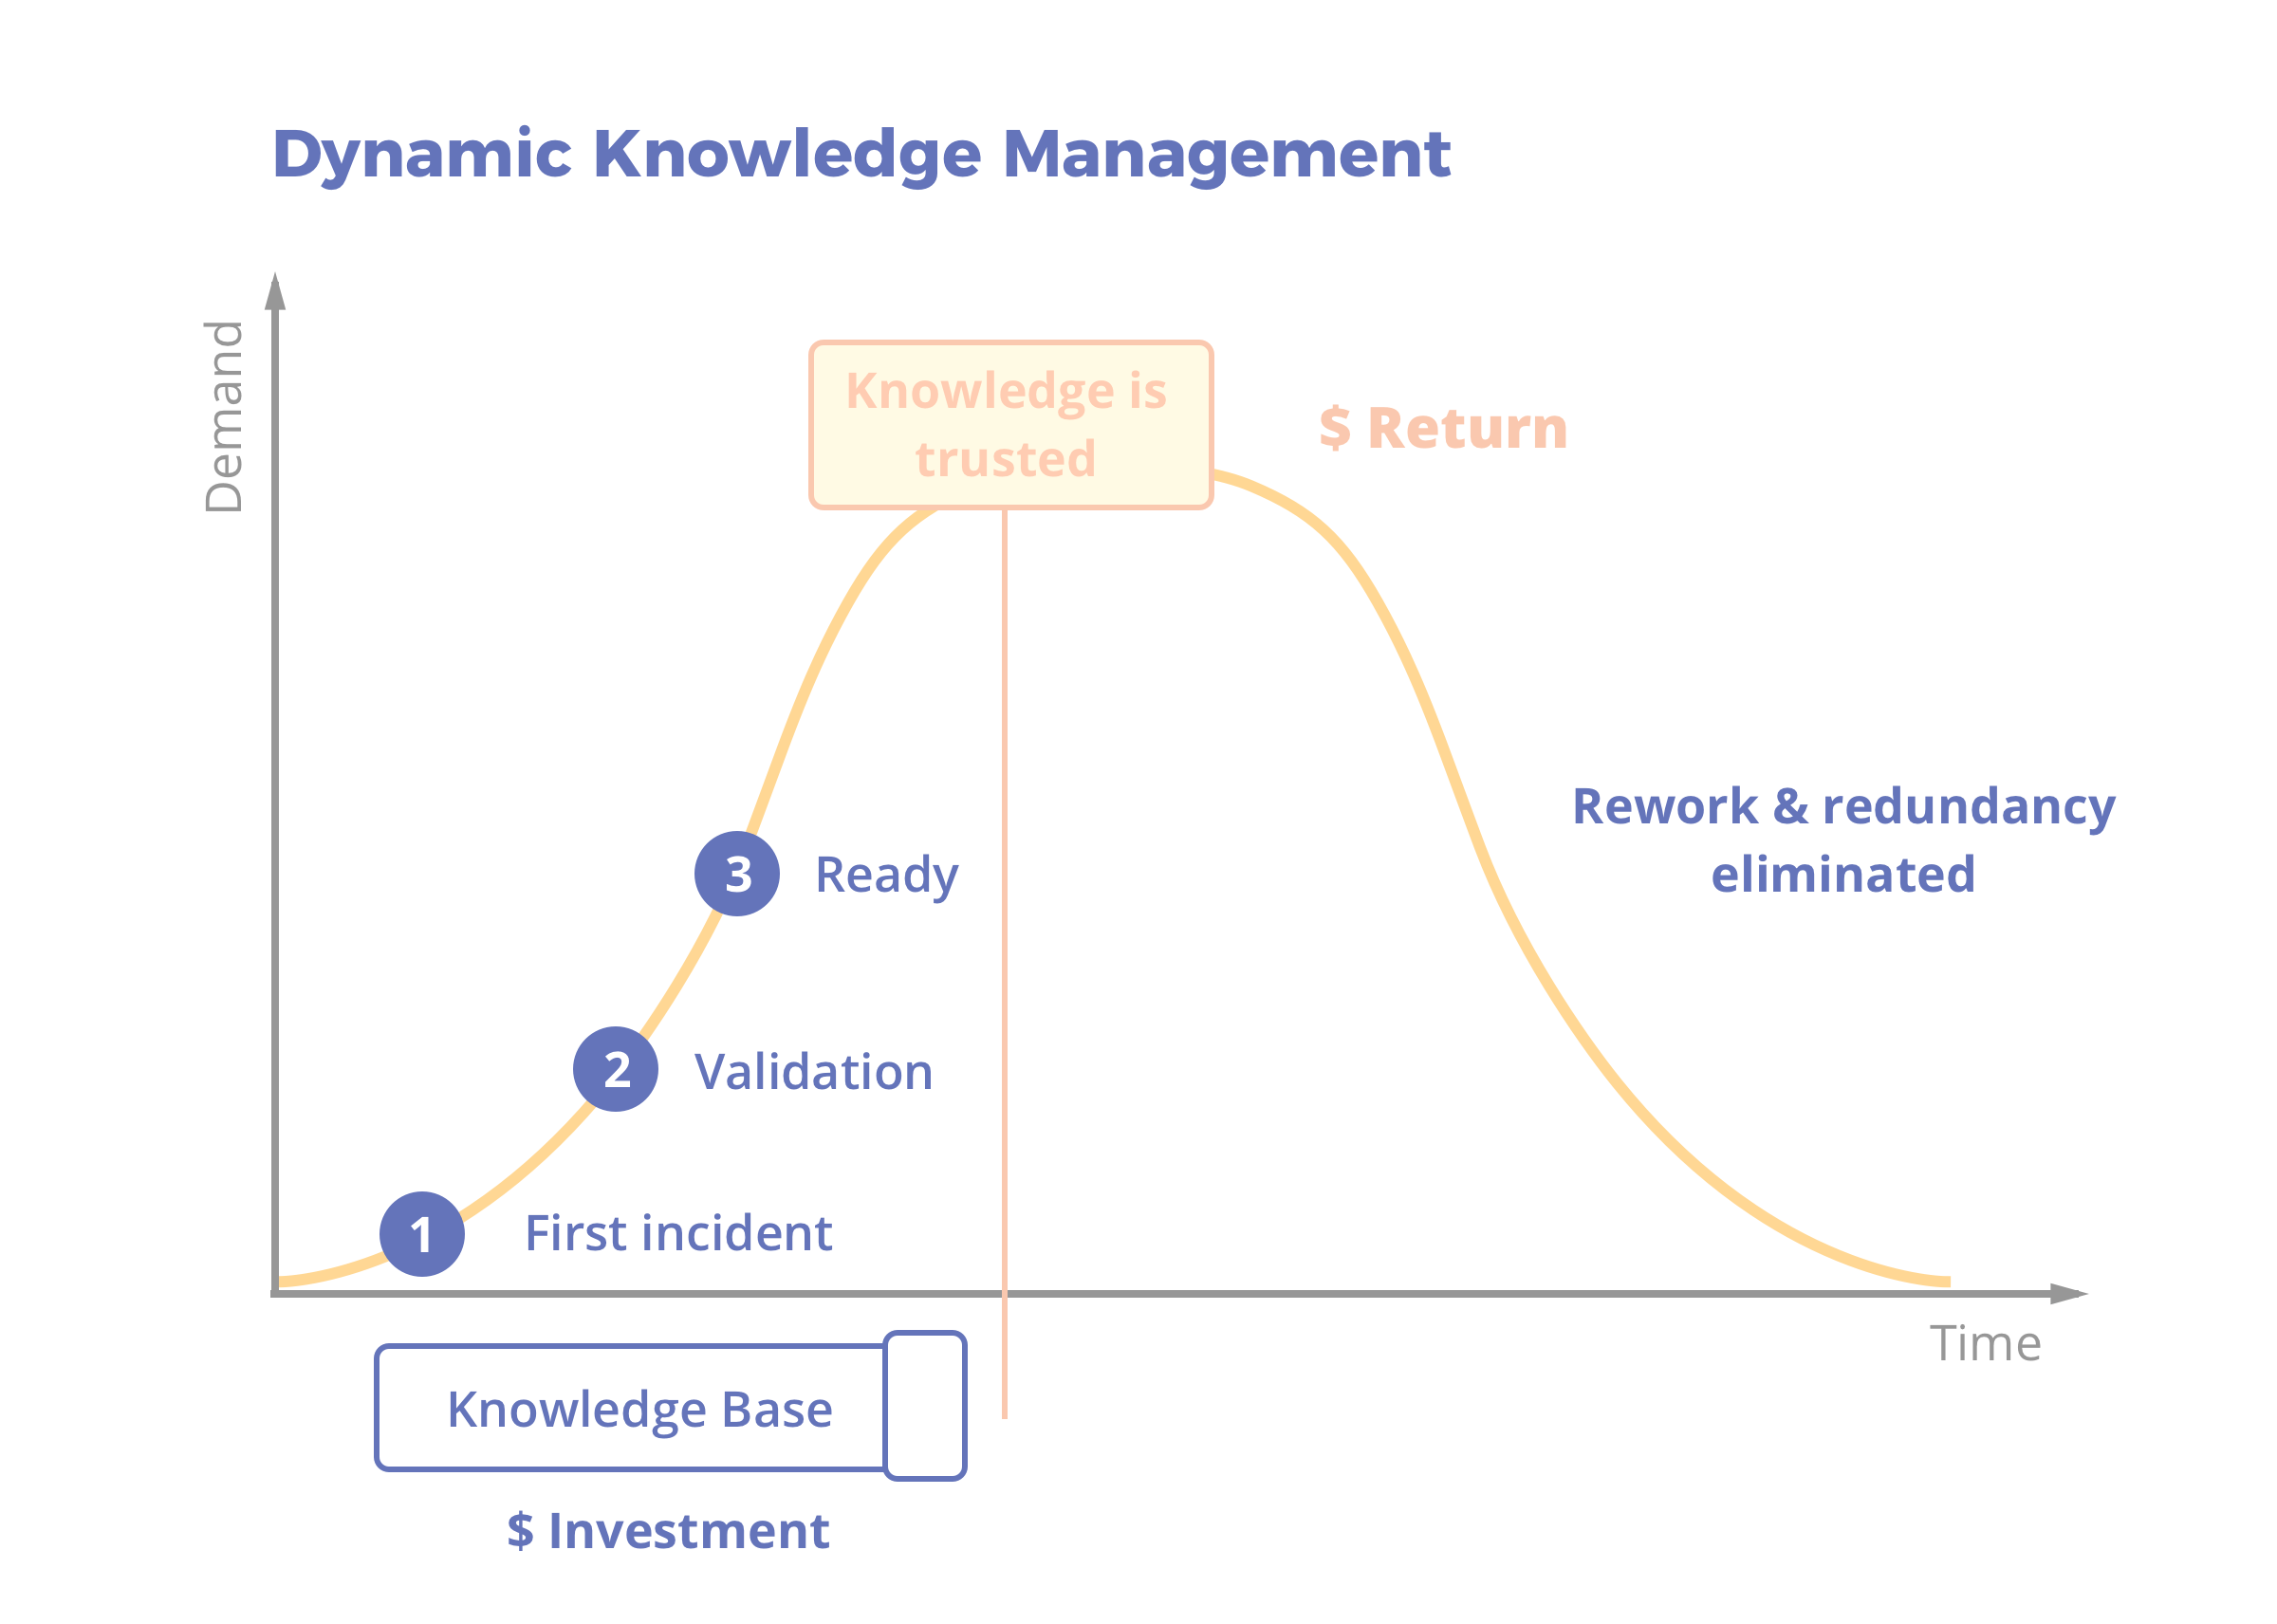 KCS: Dynamic Knowledge Management